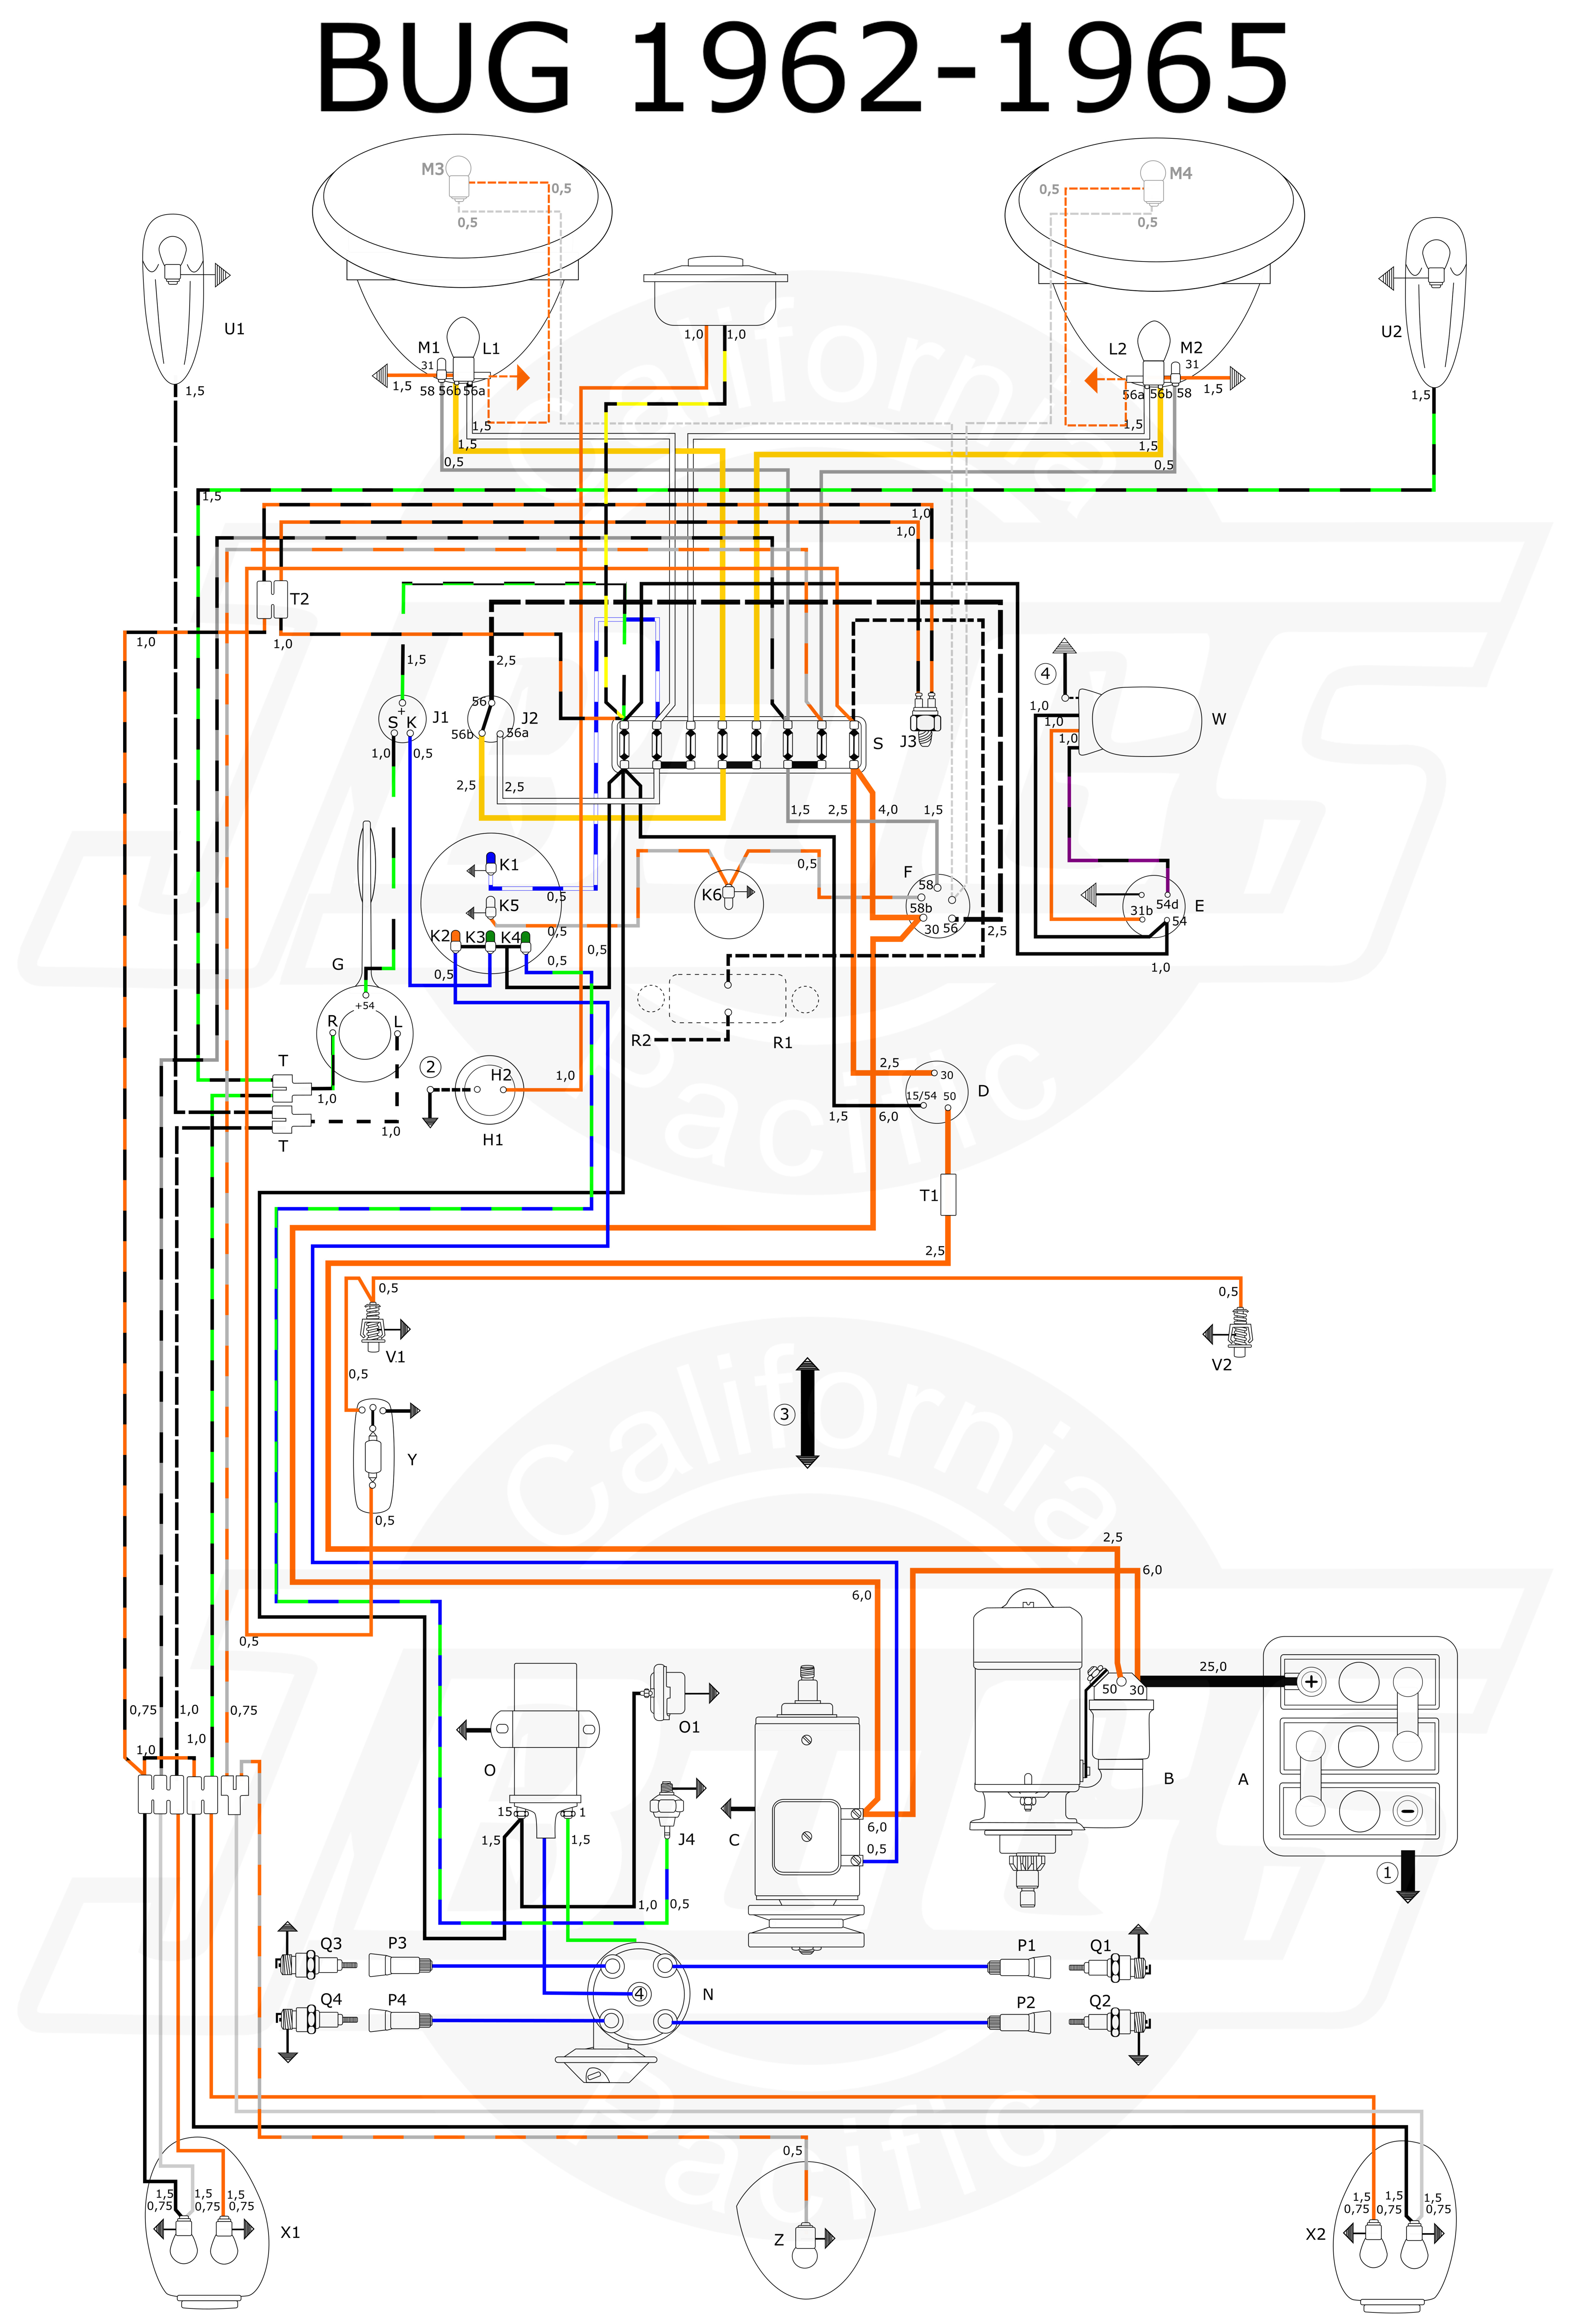 hight resolution of fuse box 98 buick regal wiring library 1982 buick regal wiring diagram wiring diagram for 1993 buick regal